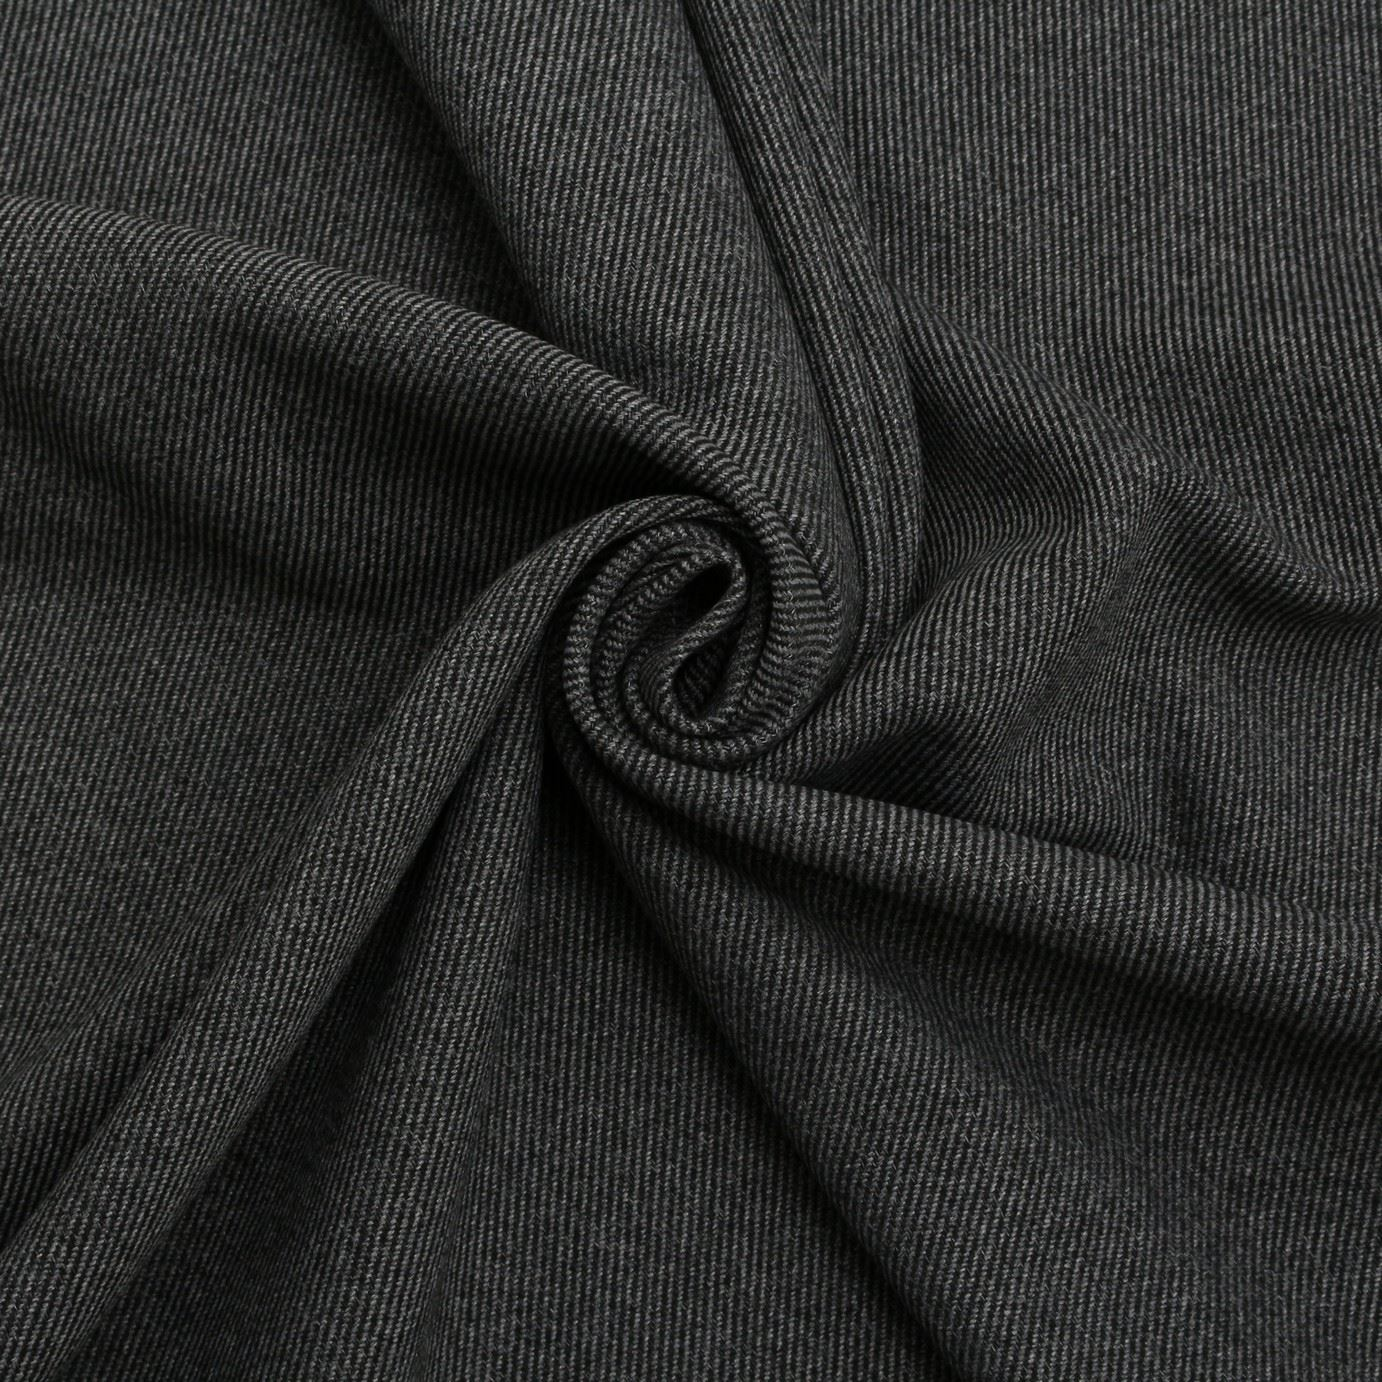 Traditional twill weave soft plain furnishing cotton faux for Furnishing fabrics